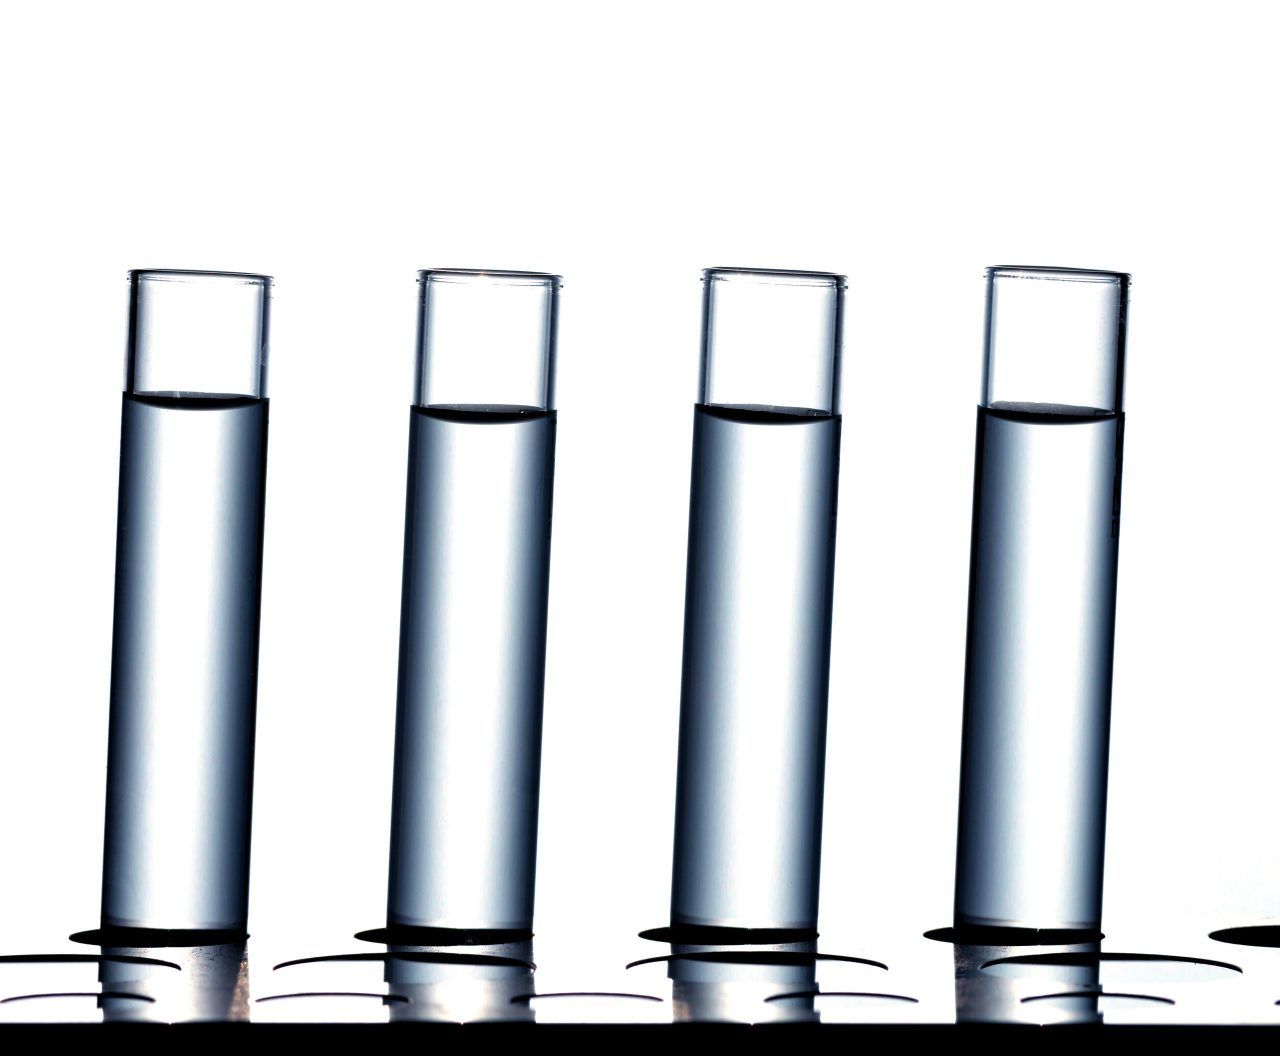 science-laboratory-research-test-tubes-976HDW9-scaled-1280x1056.jpg